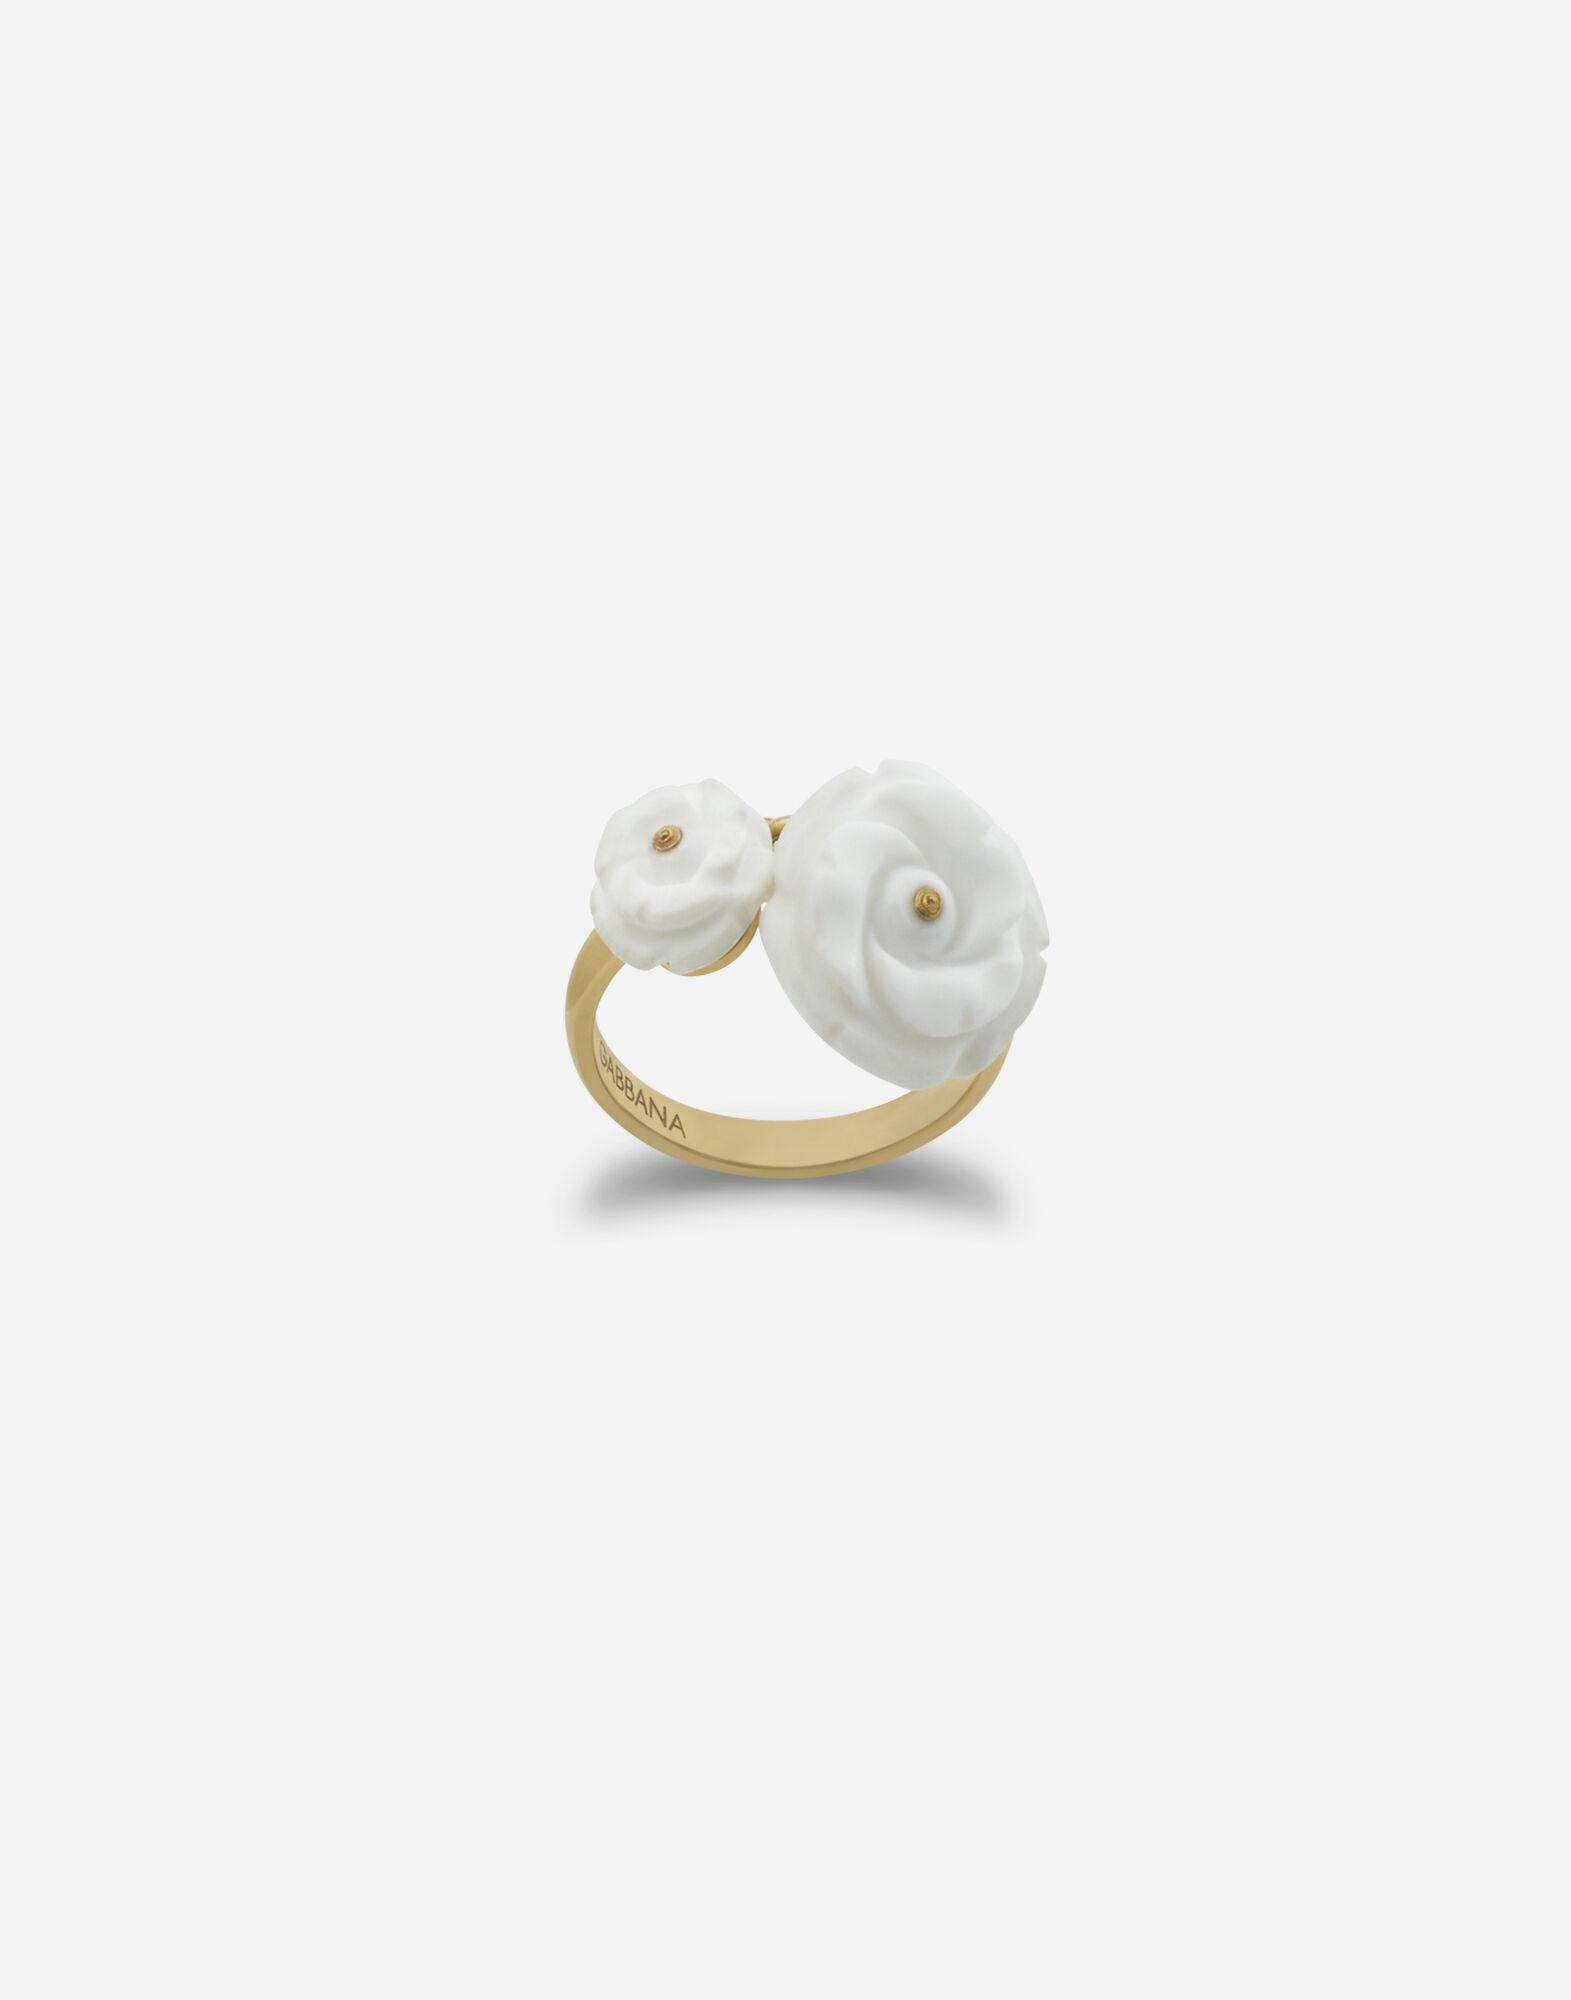 Mamma ring in yellow gold and white opals